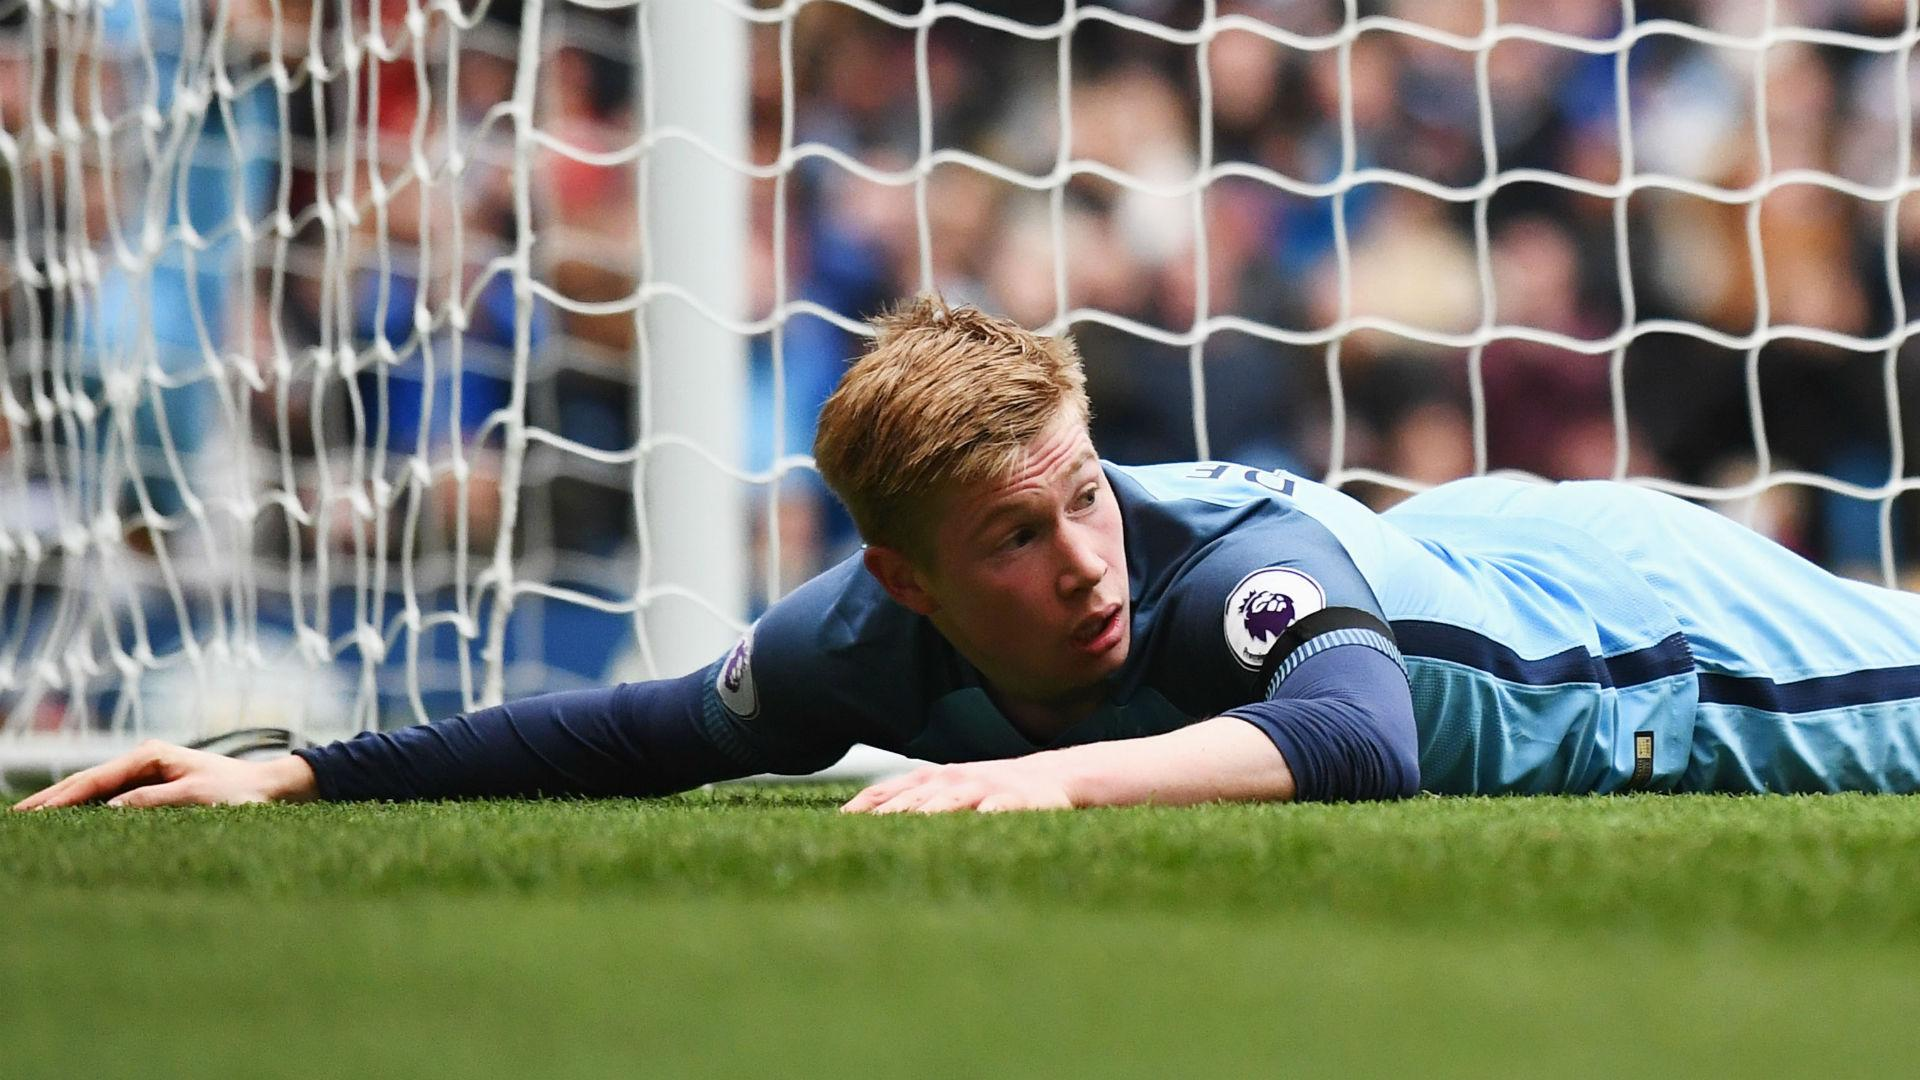 Http Atdhe Eu Vs Cheaise Manchister City: 'De Bruyne Still Thinks He's A Chelsea Player'